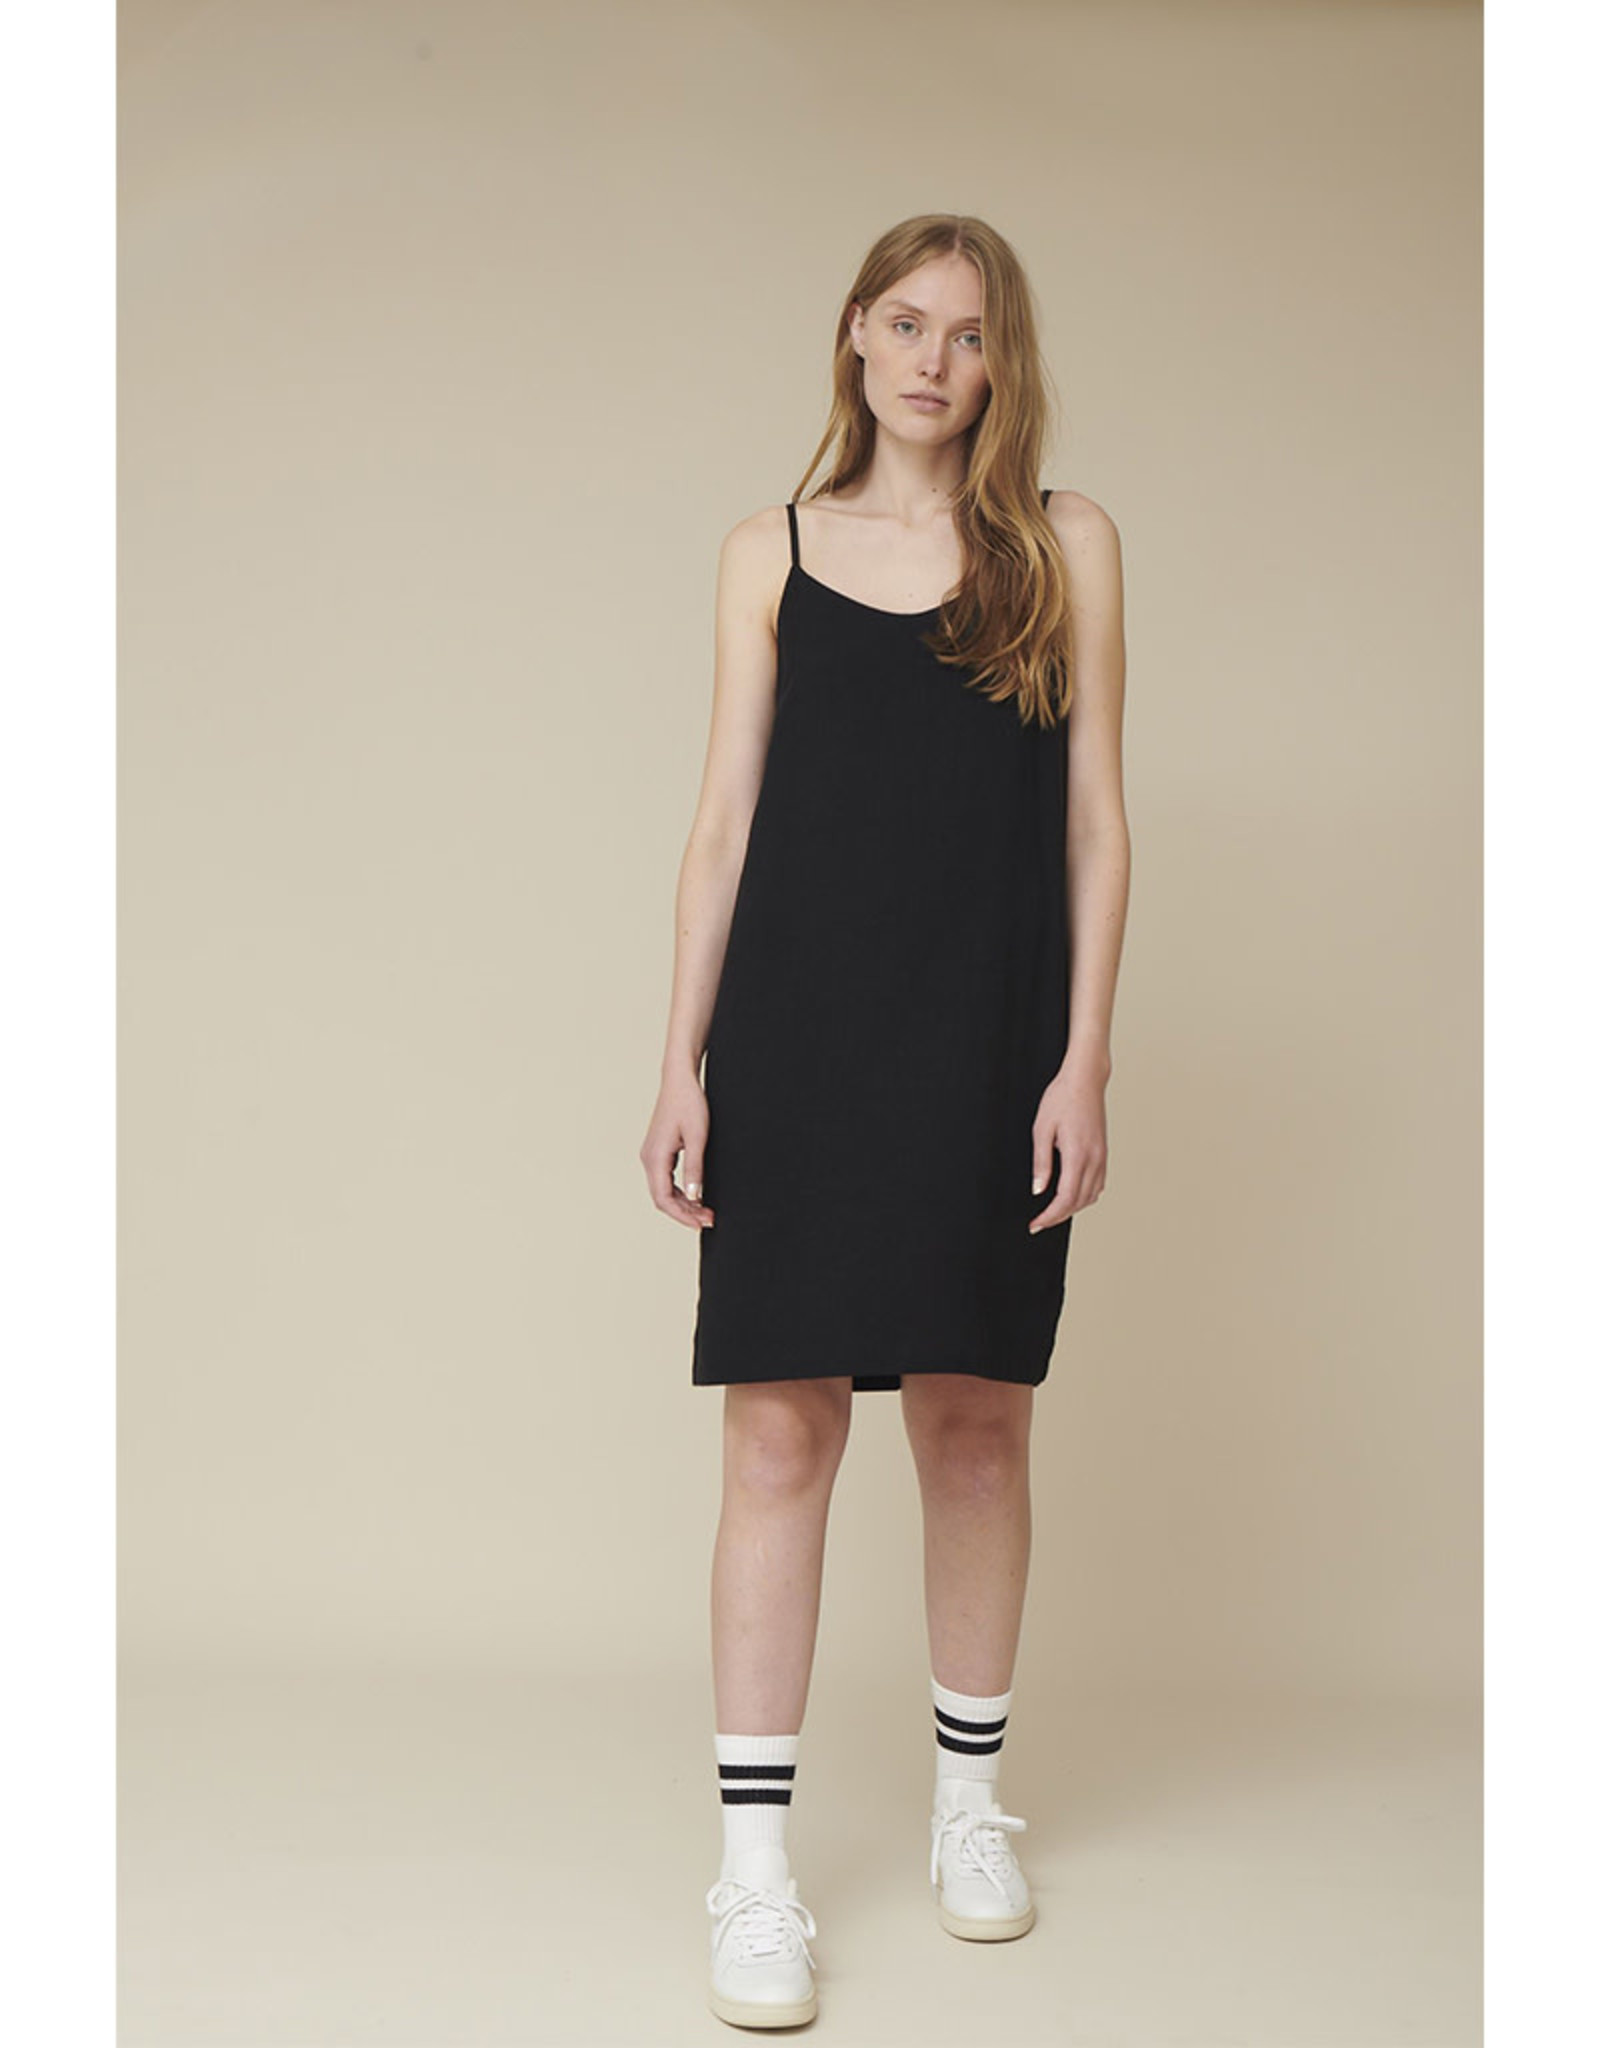 Basic Apparel Trine Tank Dress